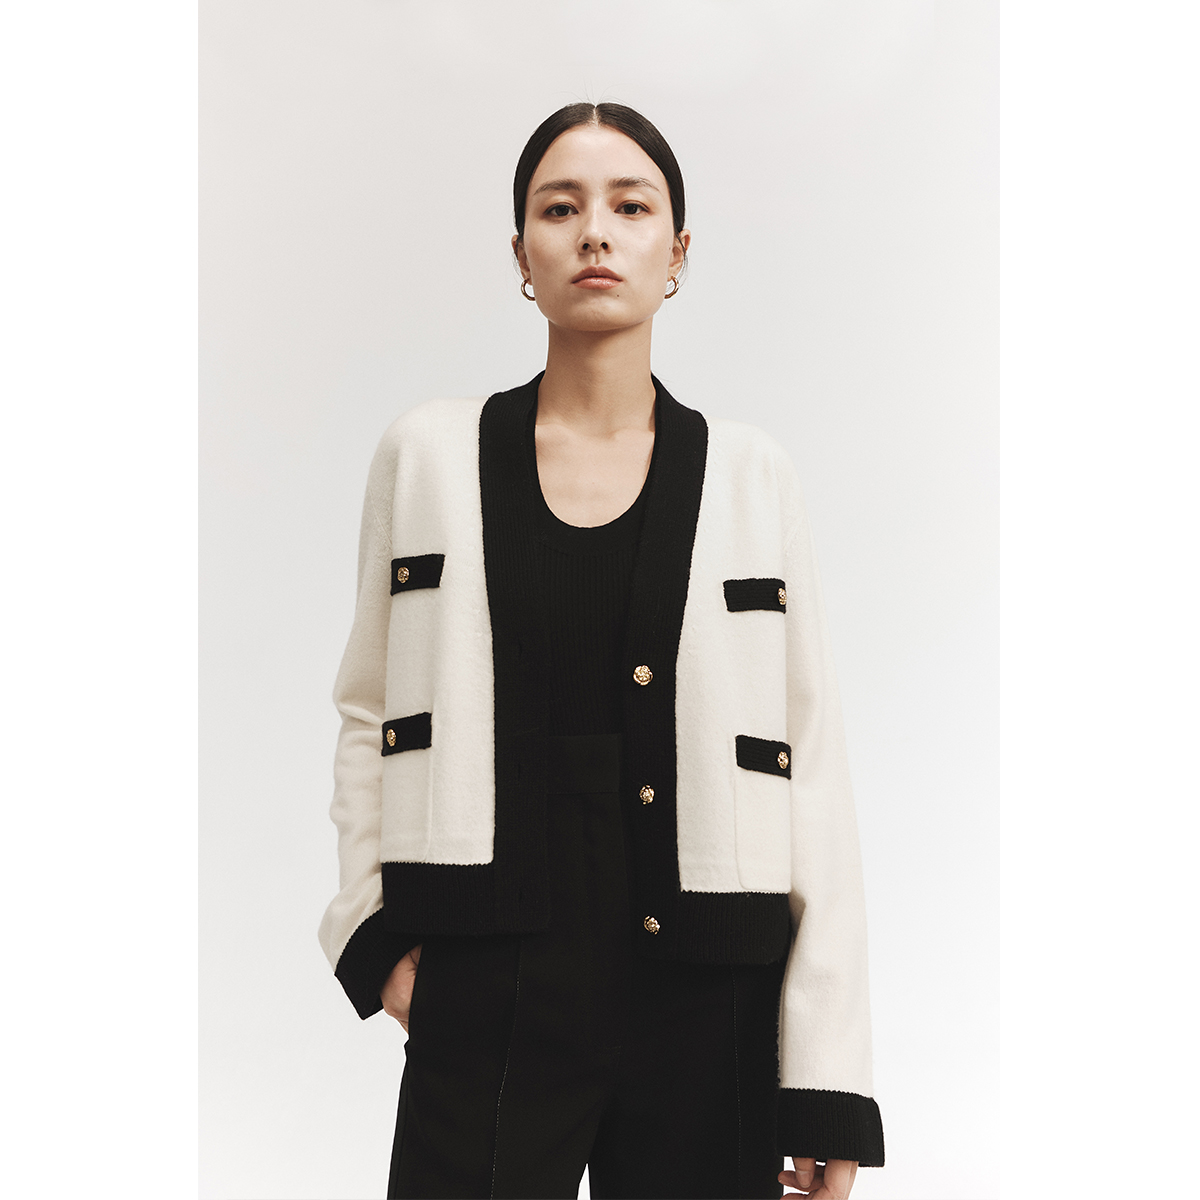 CHICJOC is worth starting with high-end three-dimensional wool trim classic contrast camellia button small fragrant cardigan